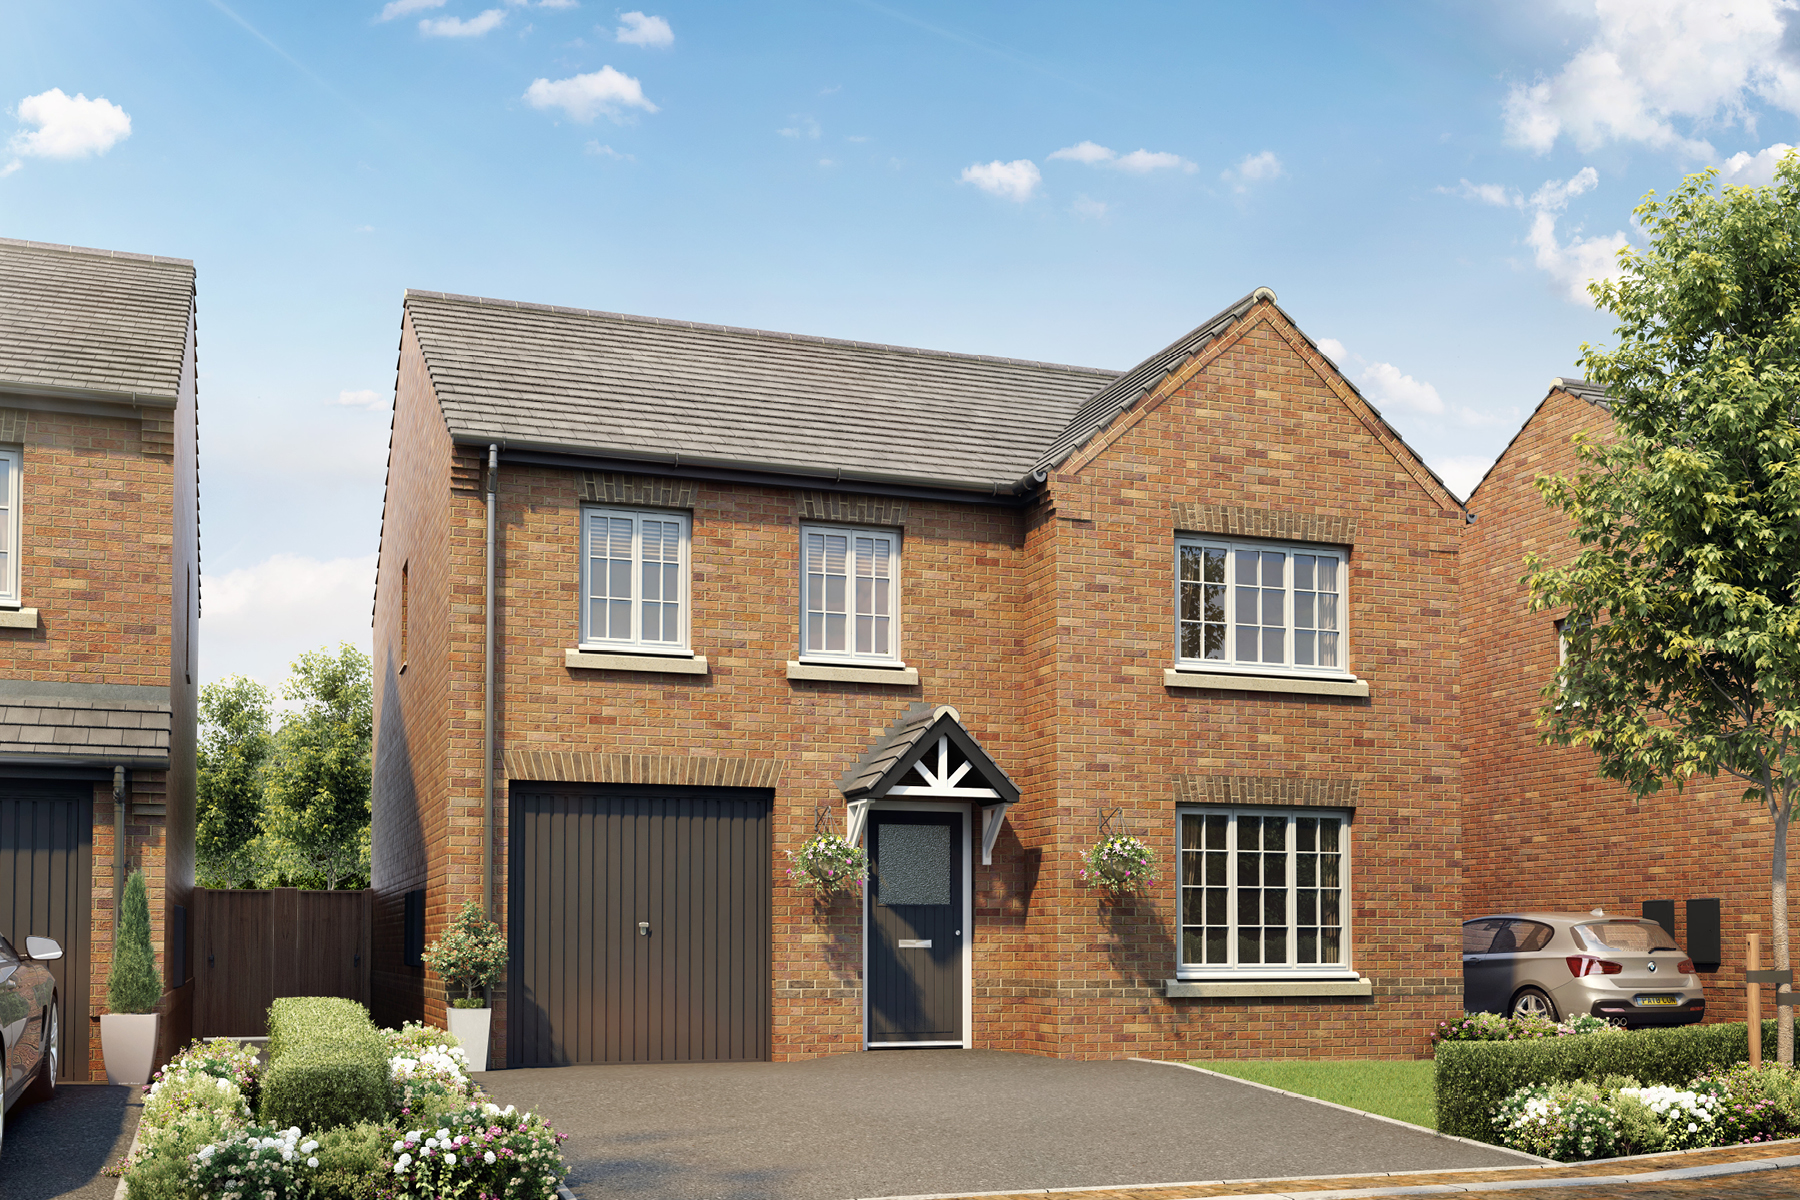 New TWY - Foxley Meadows - CGI - Eynsham